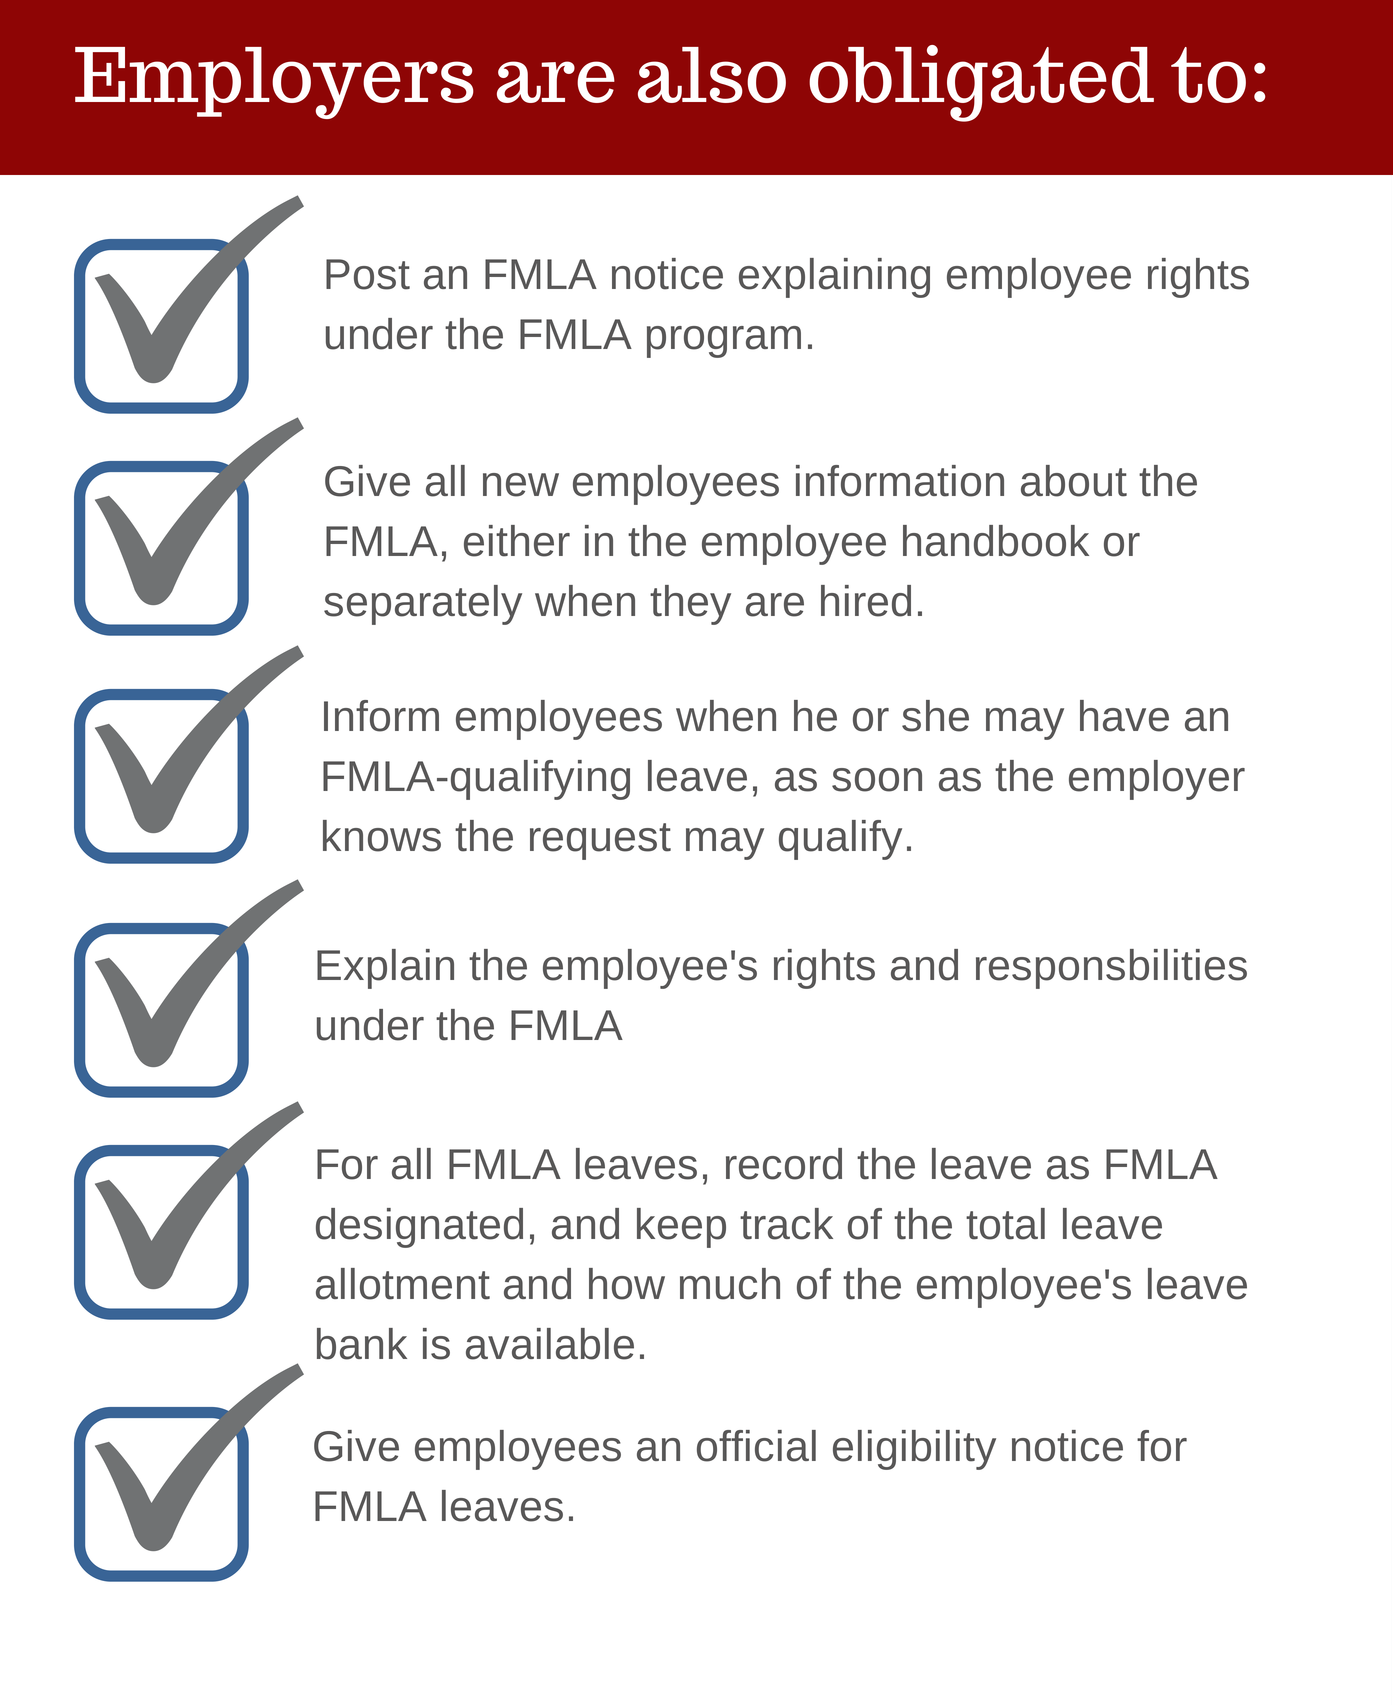 Employer FMLA obligations